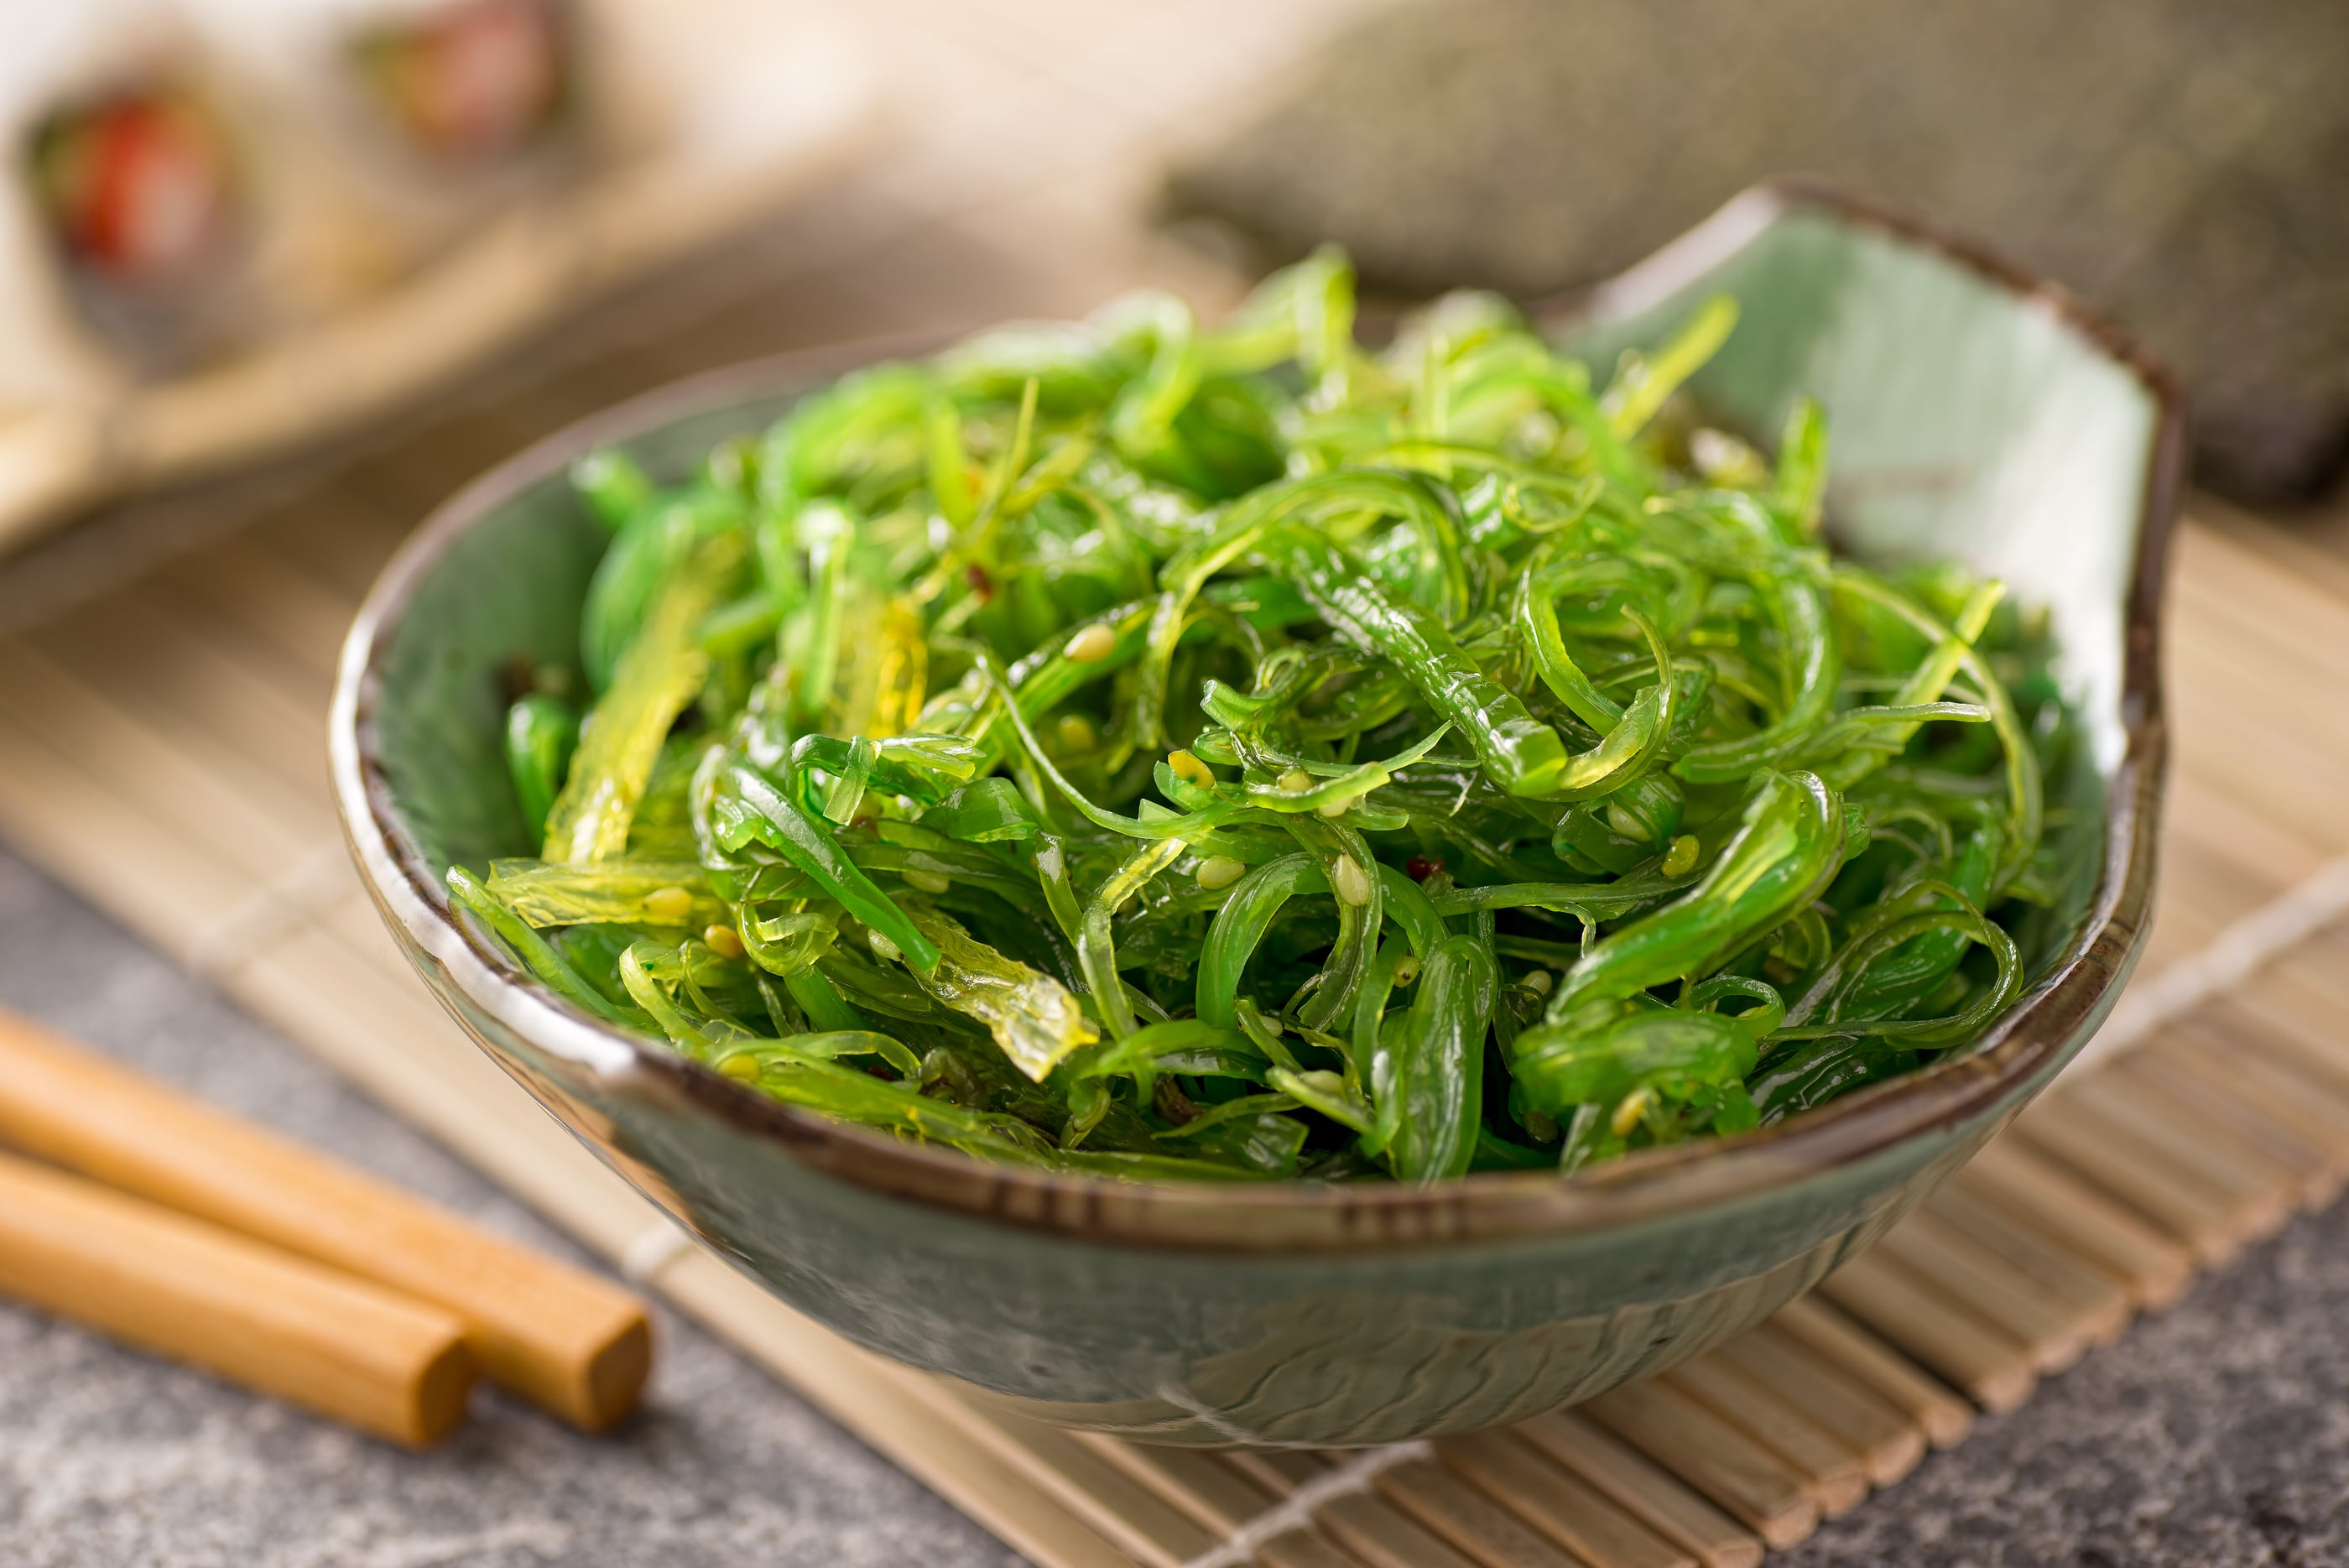 A delicious fresh japanese style seaweed salad. ** Note: Shallow depth of field